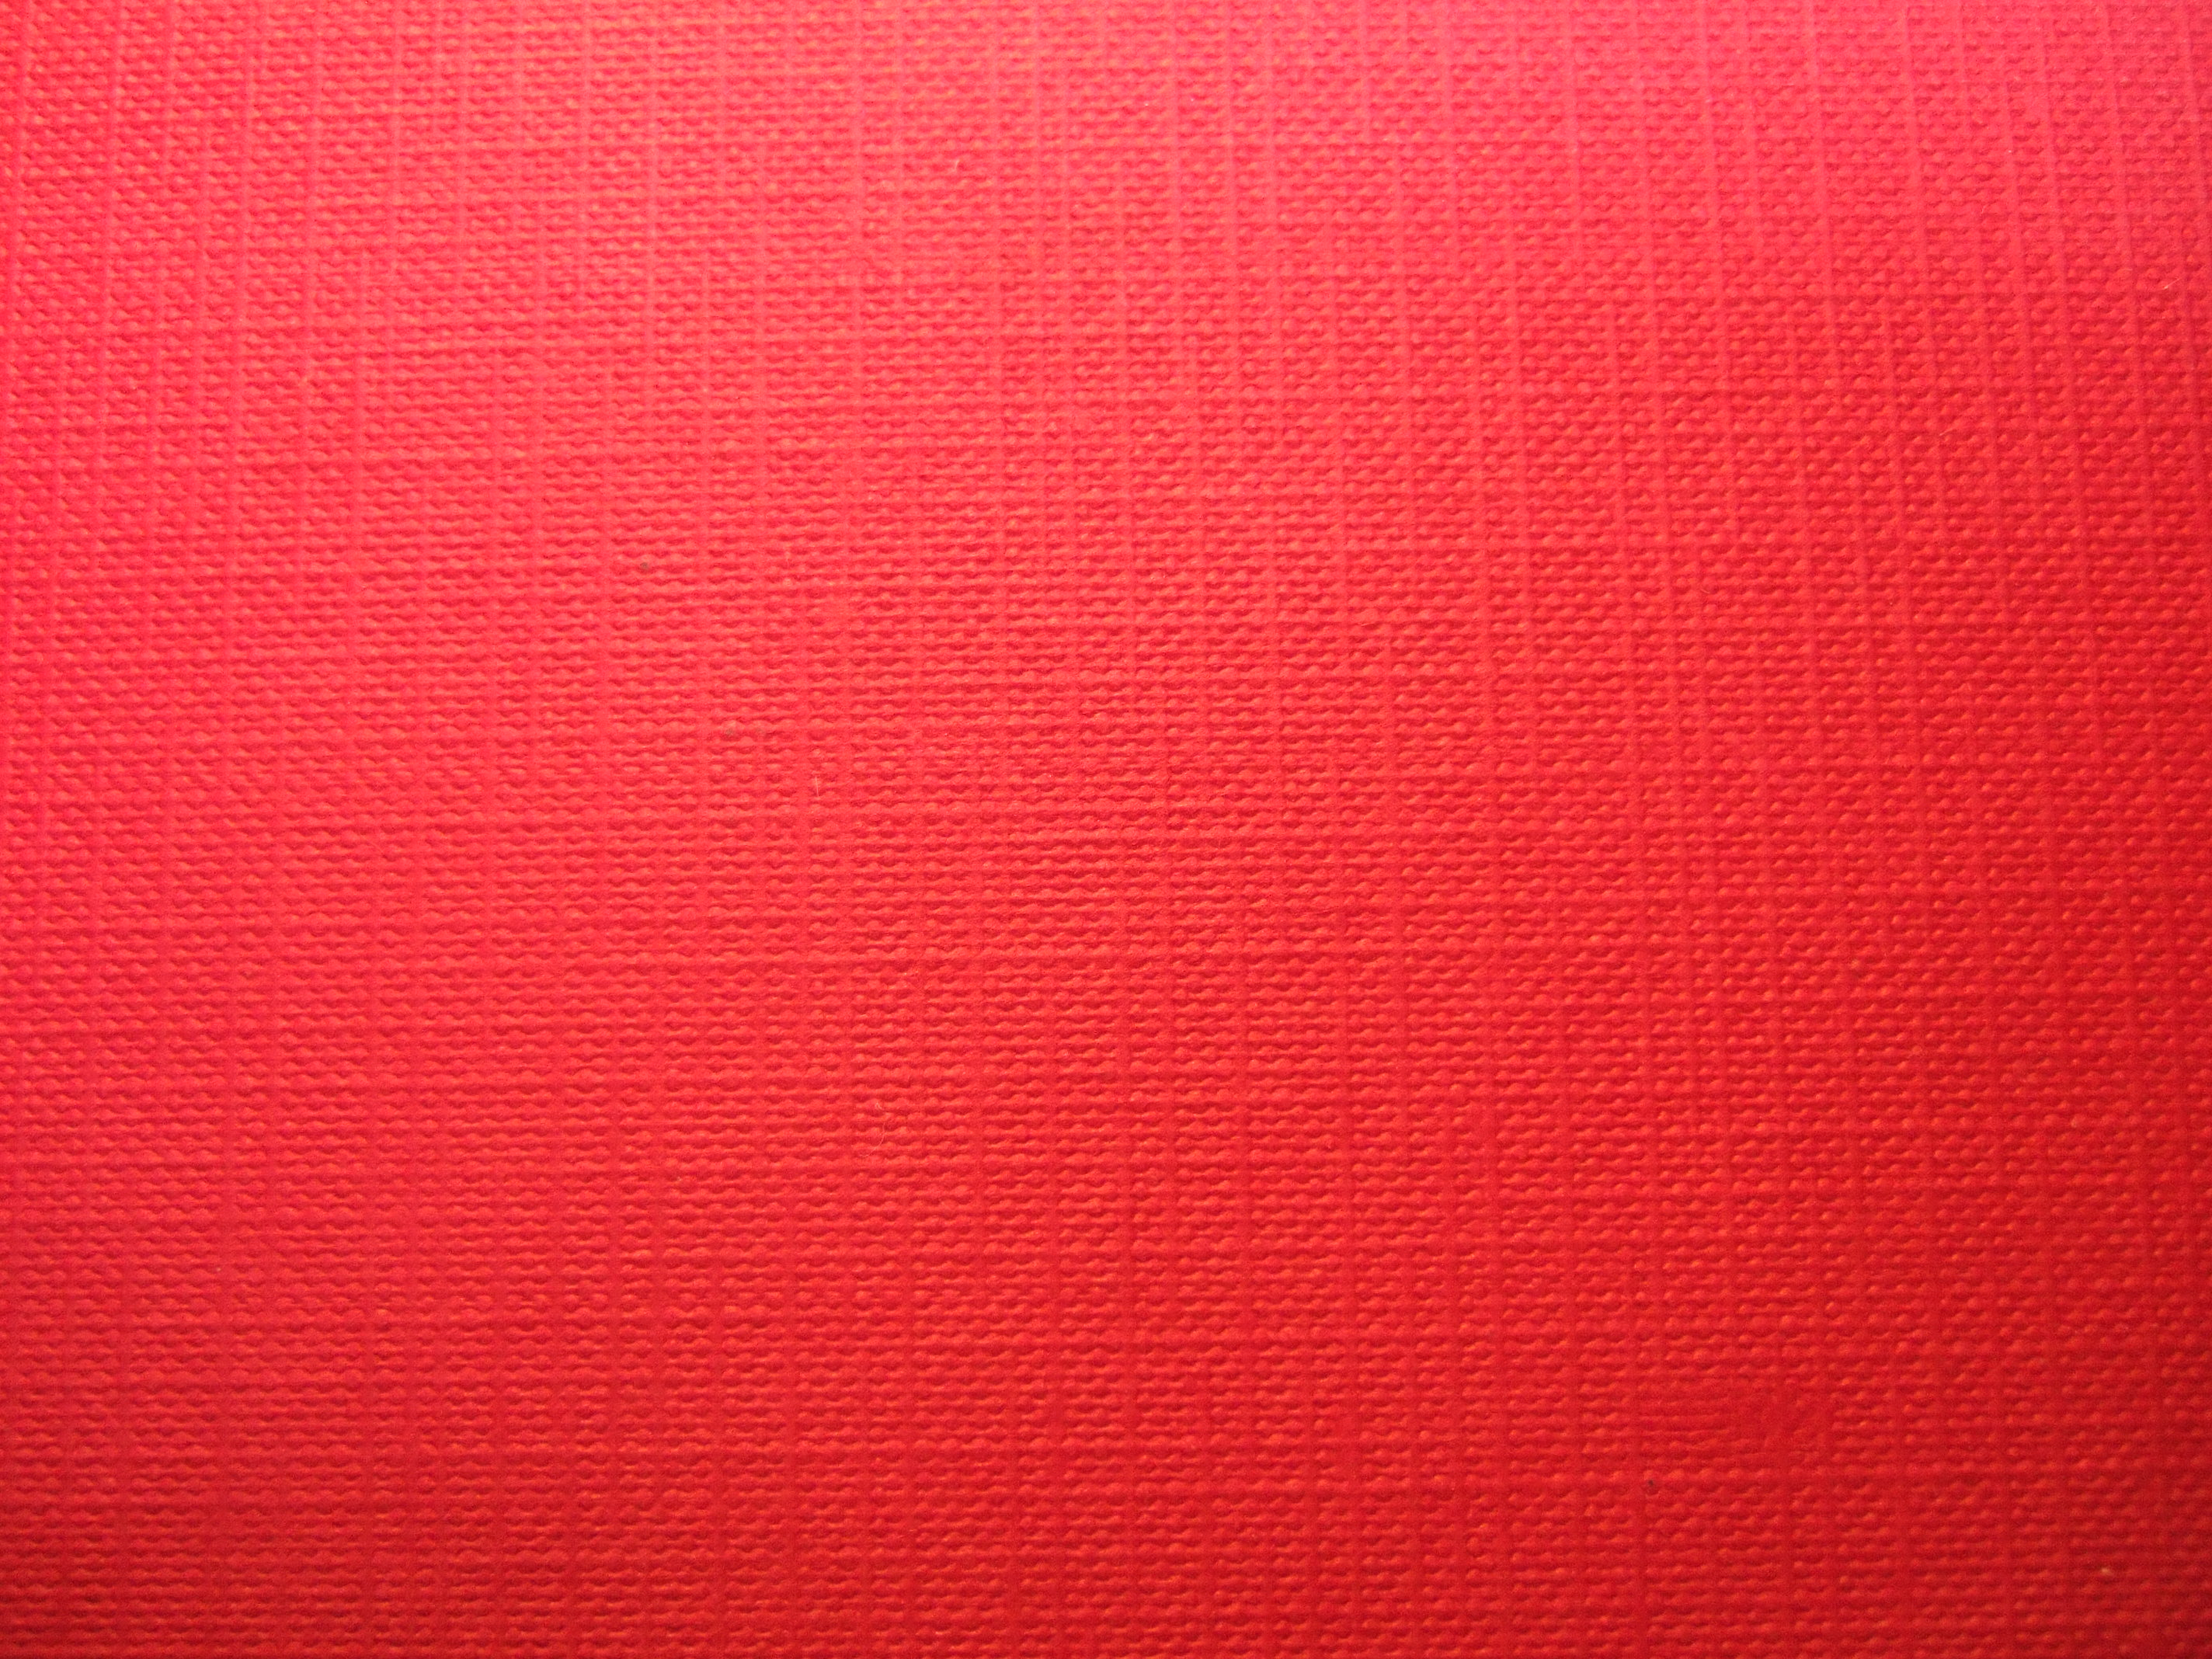 Red Book Cover Texture : Image after photos tabus fabrics texture linen red